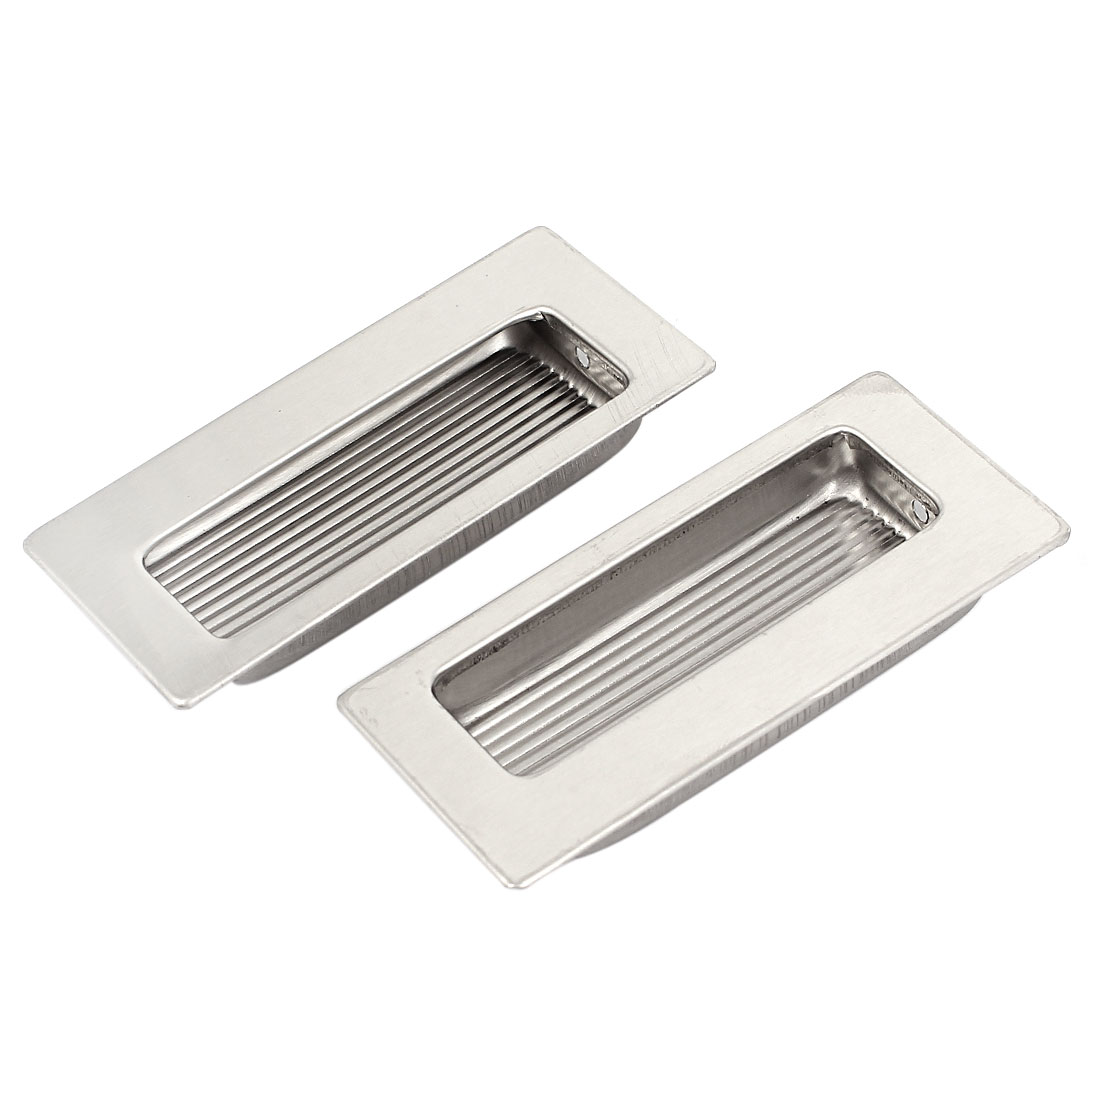 39mmx85mm Stainless Steel Recessed Flush Pull Finger Insert Door Handle 2PCS